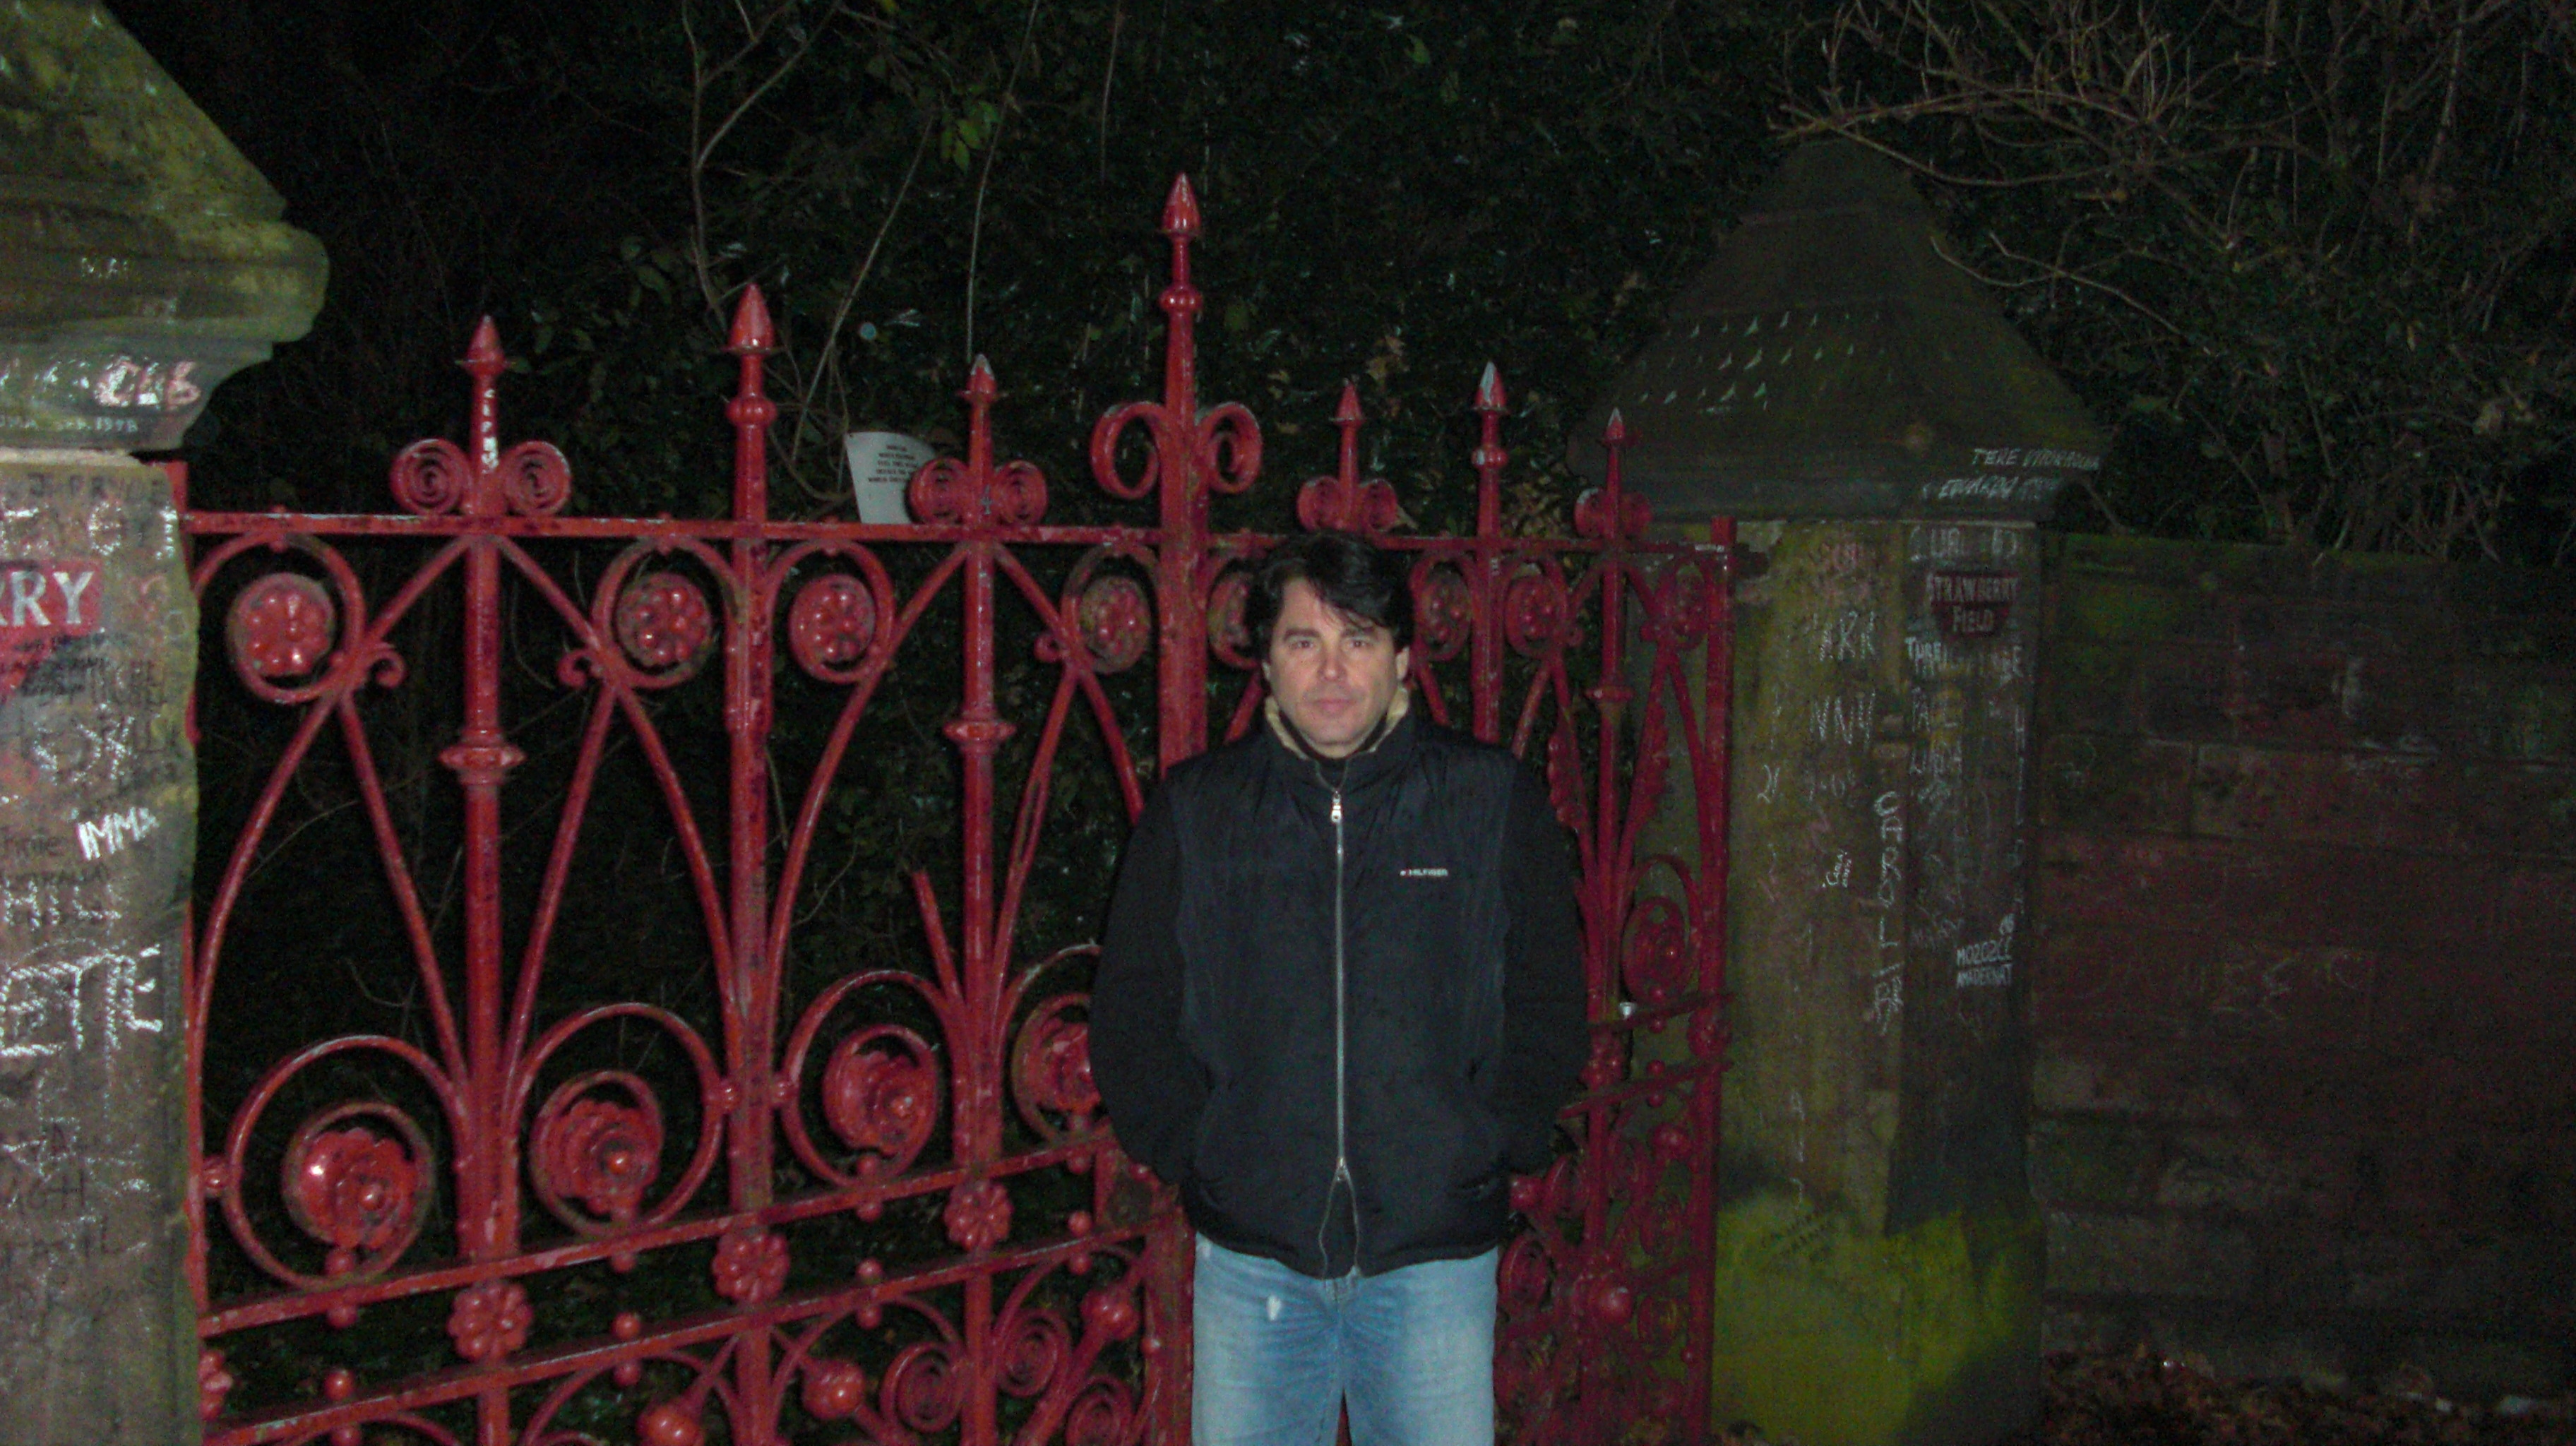 Strawberry Field, Liverpool, UK - 2009